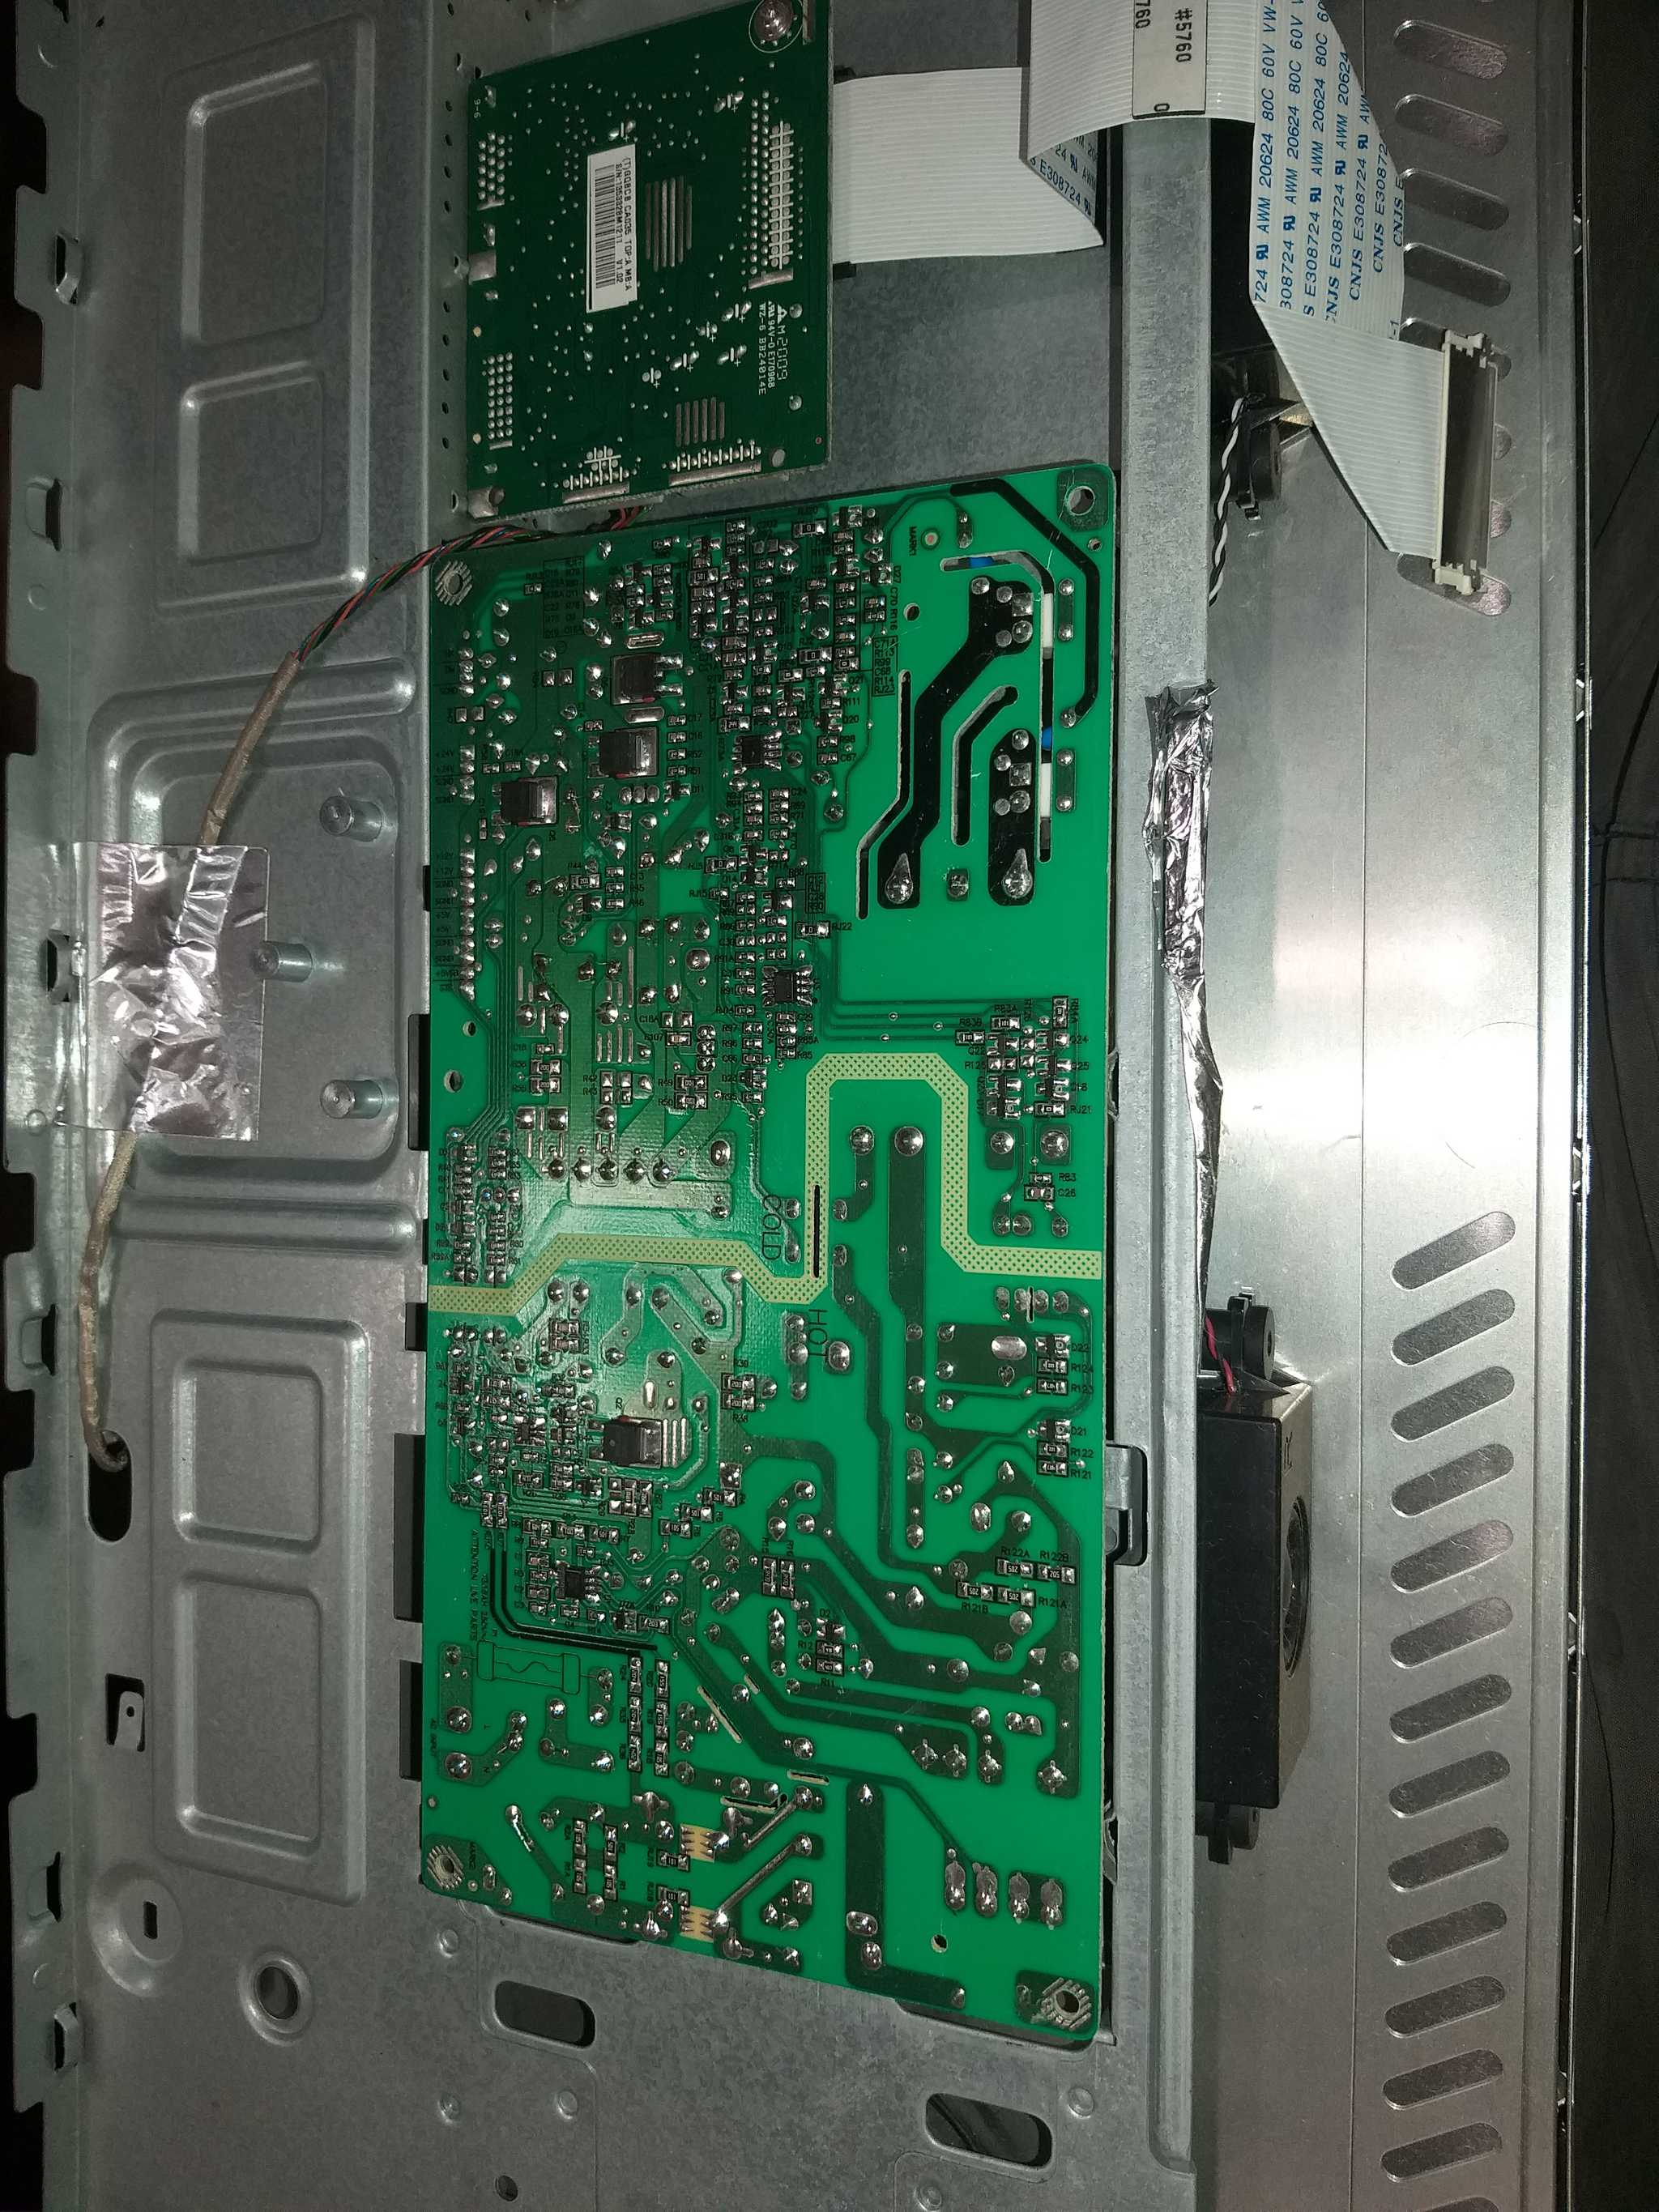 Back panel of monitor showing circuit board.